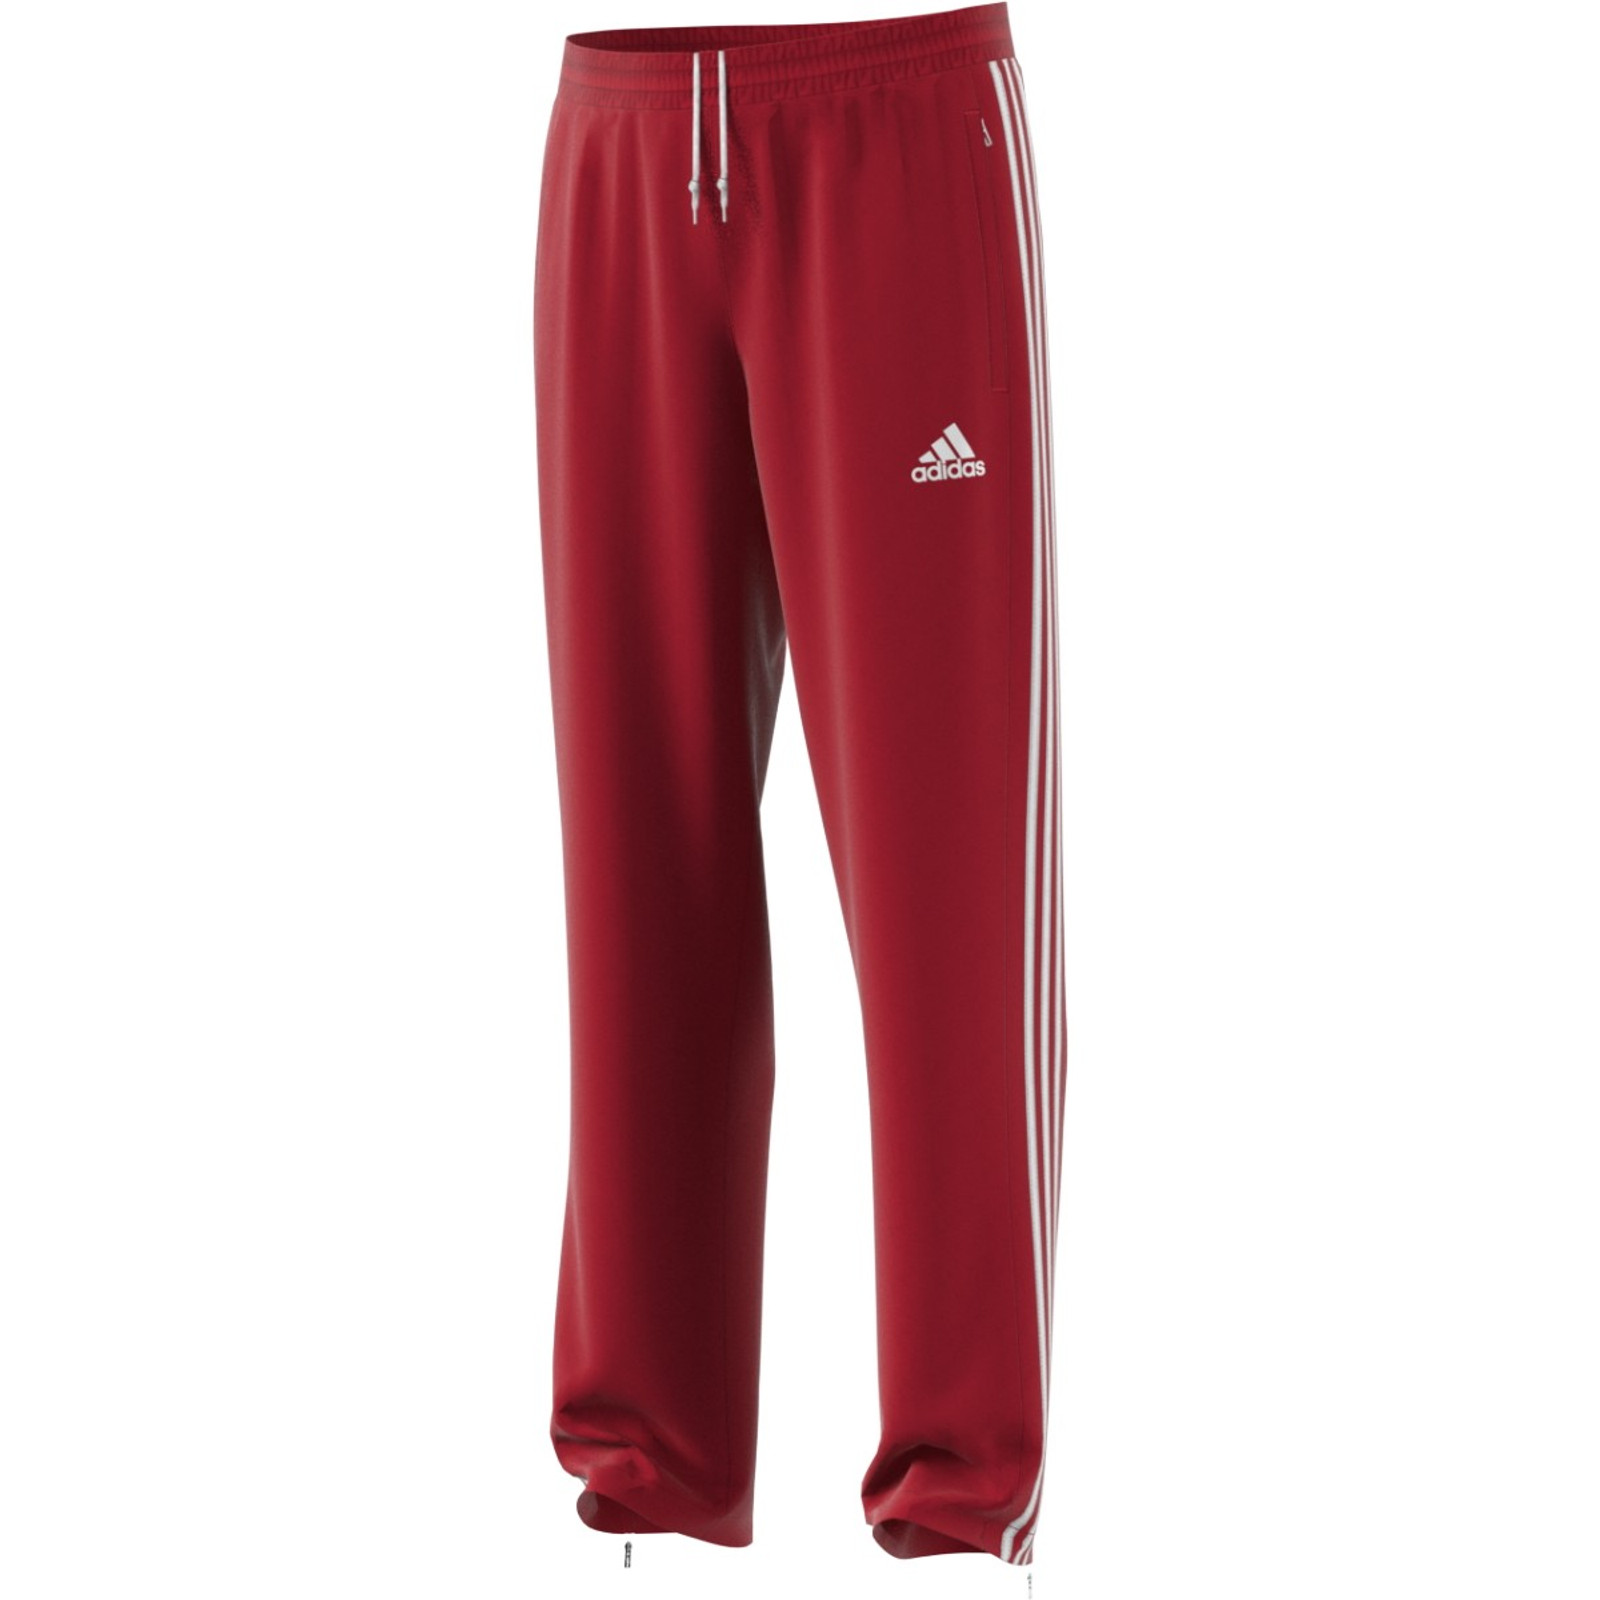 Details zu adidas T16 Team Hose Männer power Sporthose Jogging Training Fitness AJ5318